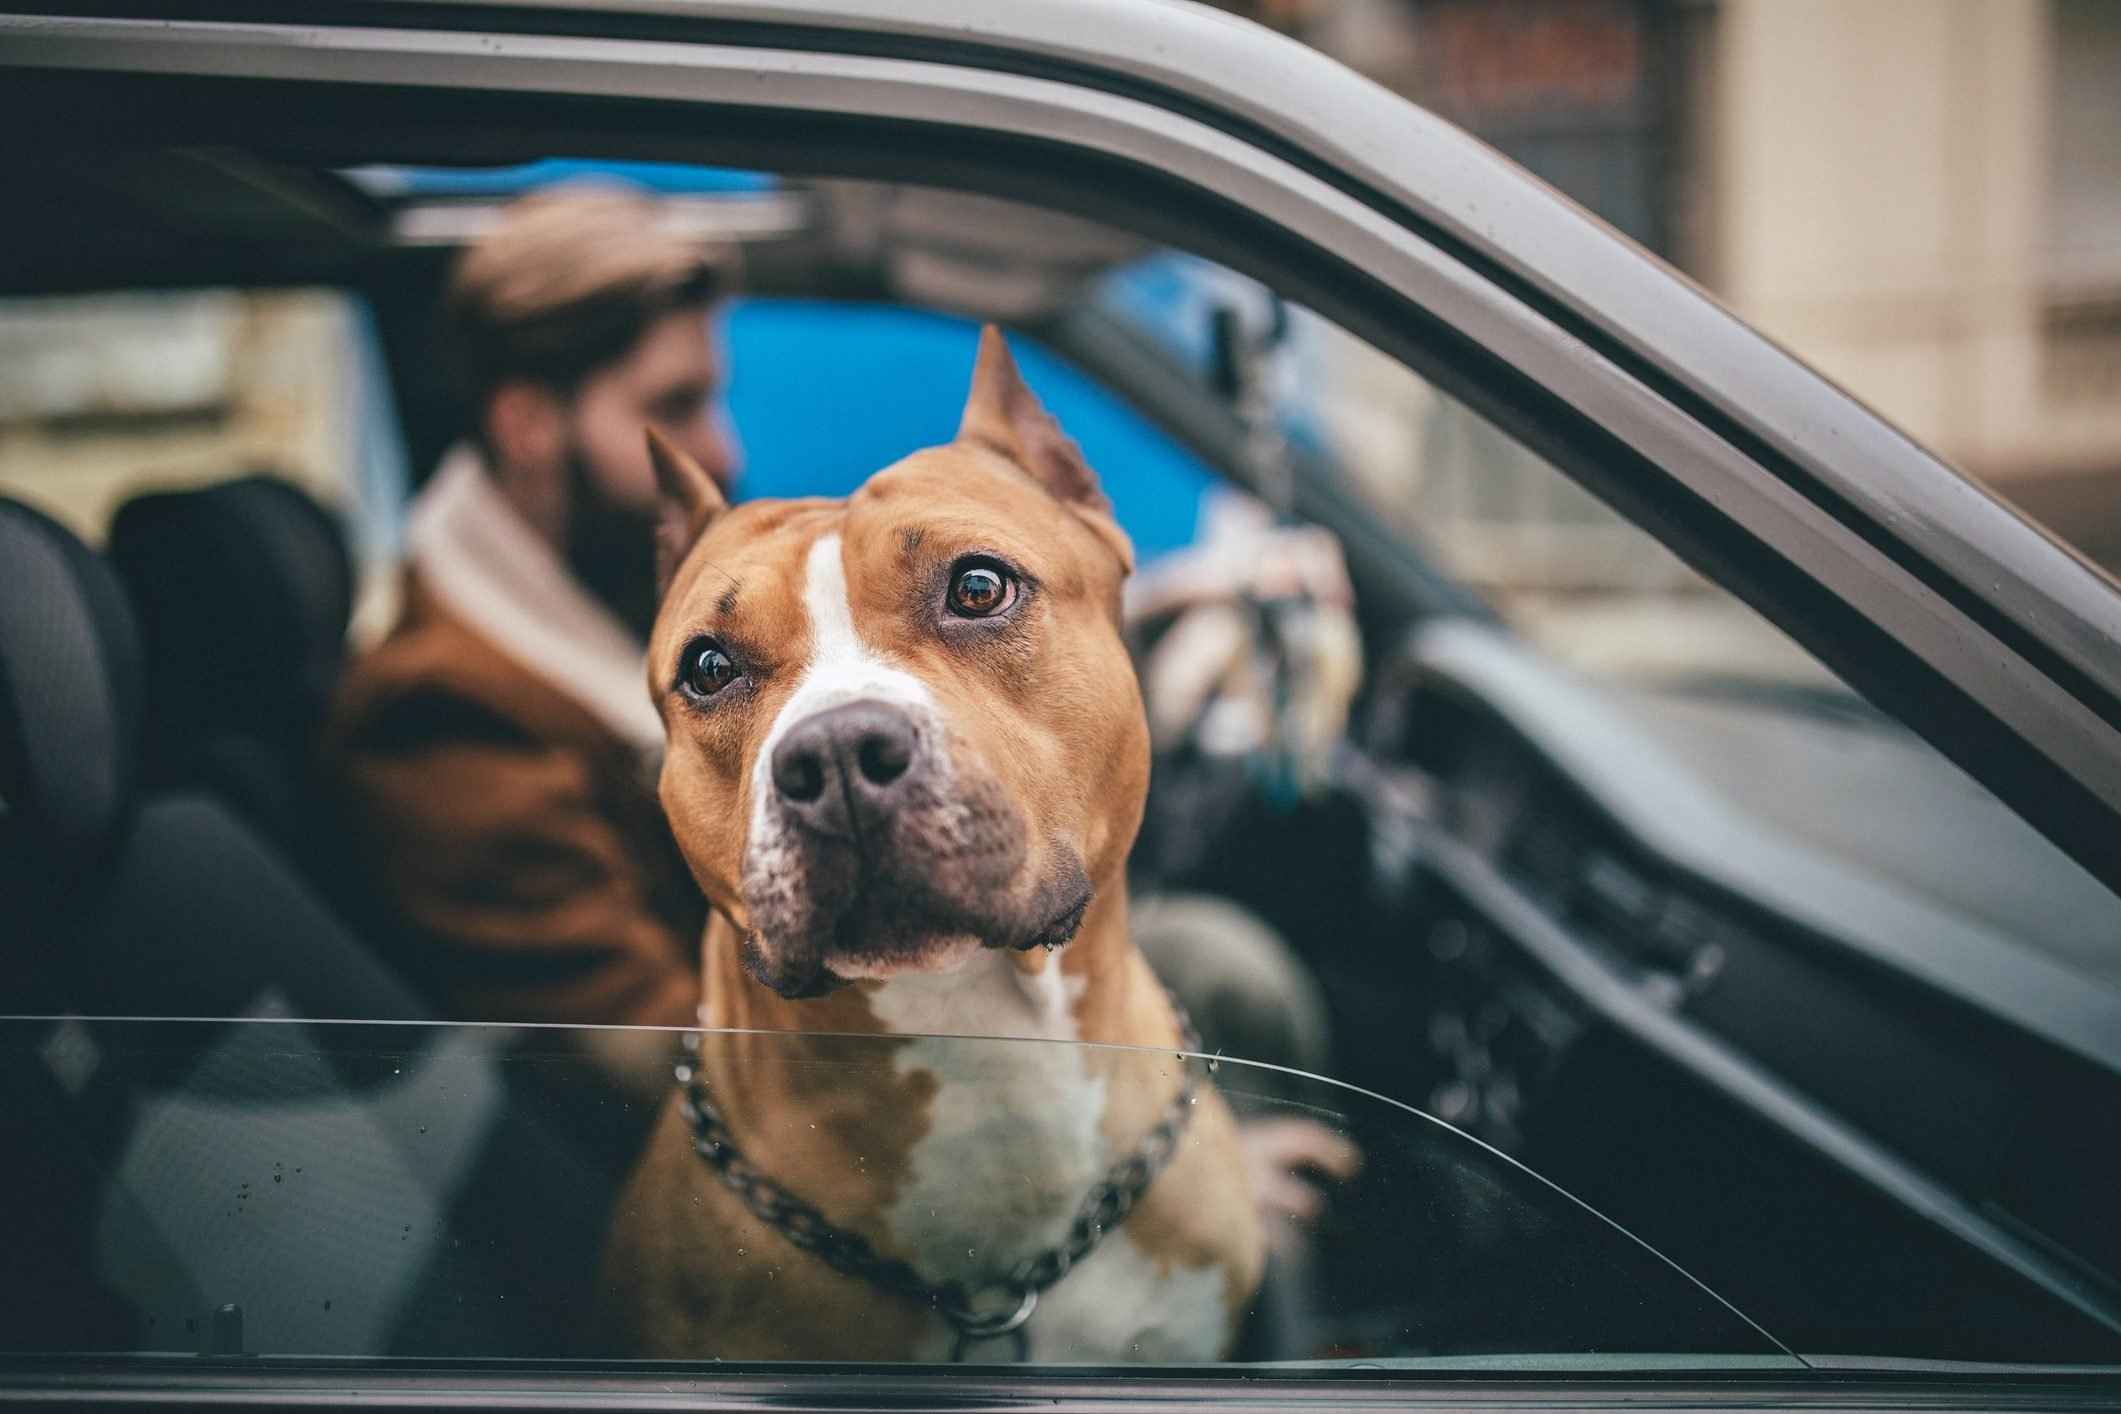 Man enjoys the ride home as much as his dog